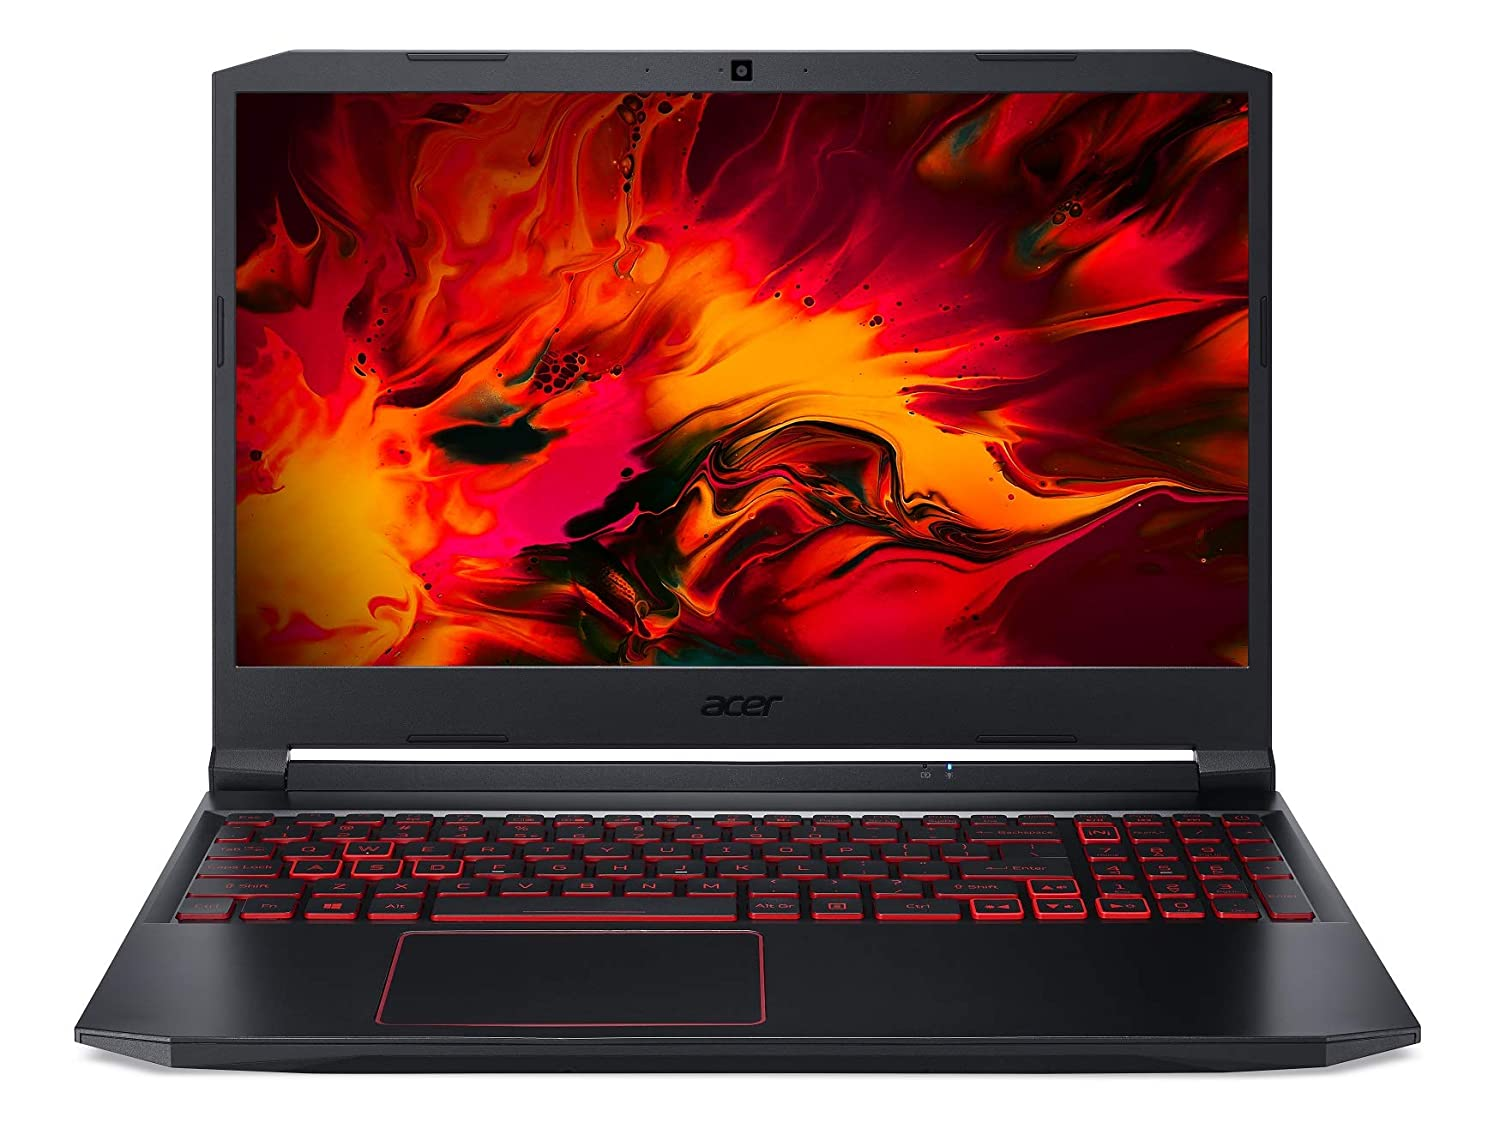 Acer Nitro 5 Intel Core i5-10th Gen 15.6-inch Display 1920 x 1080 Thin and Light Gaming Laptop (8GB